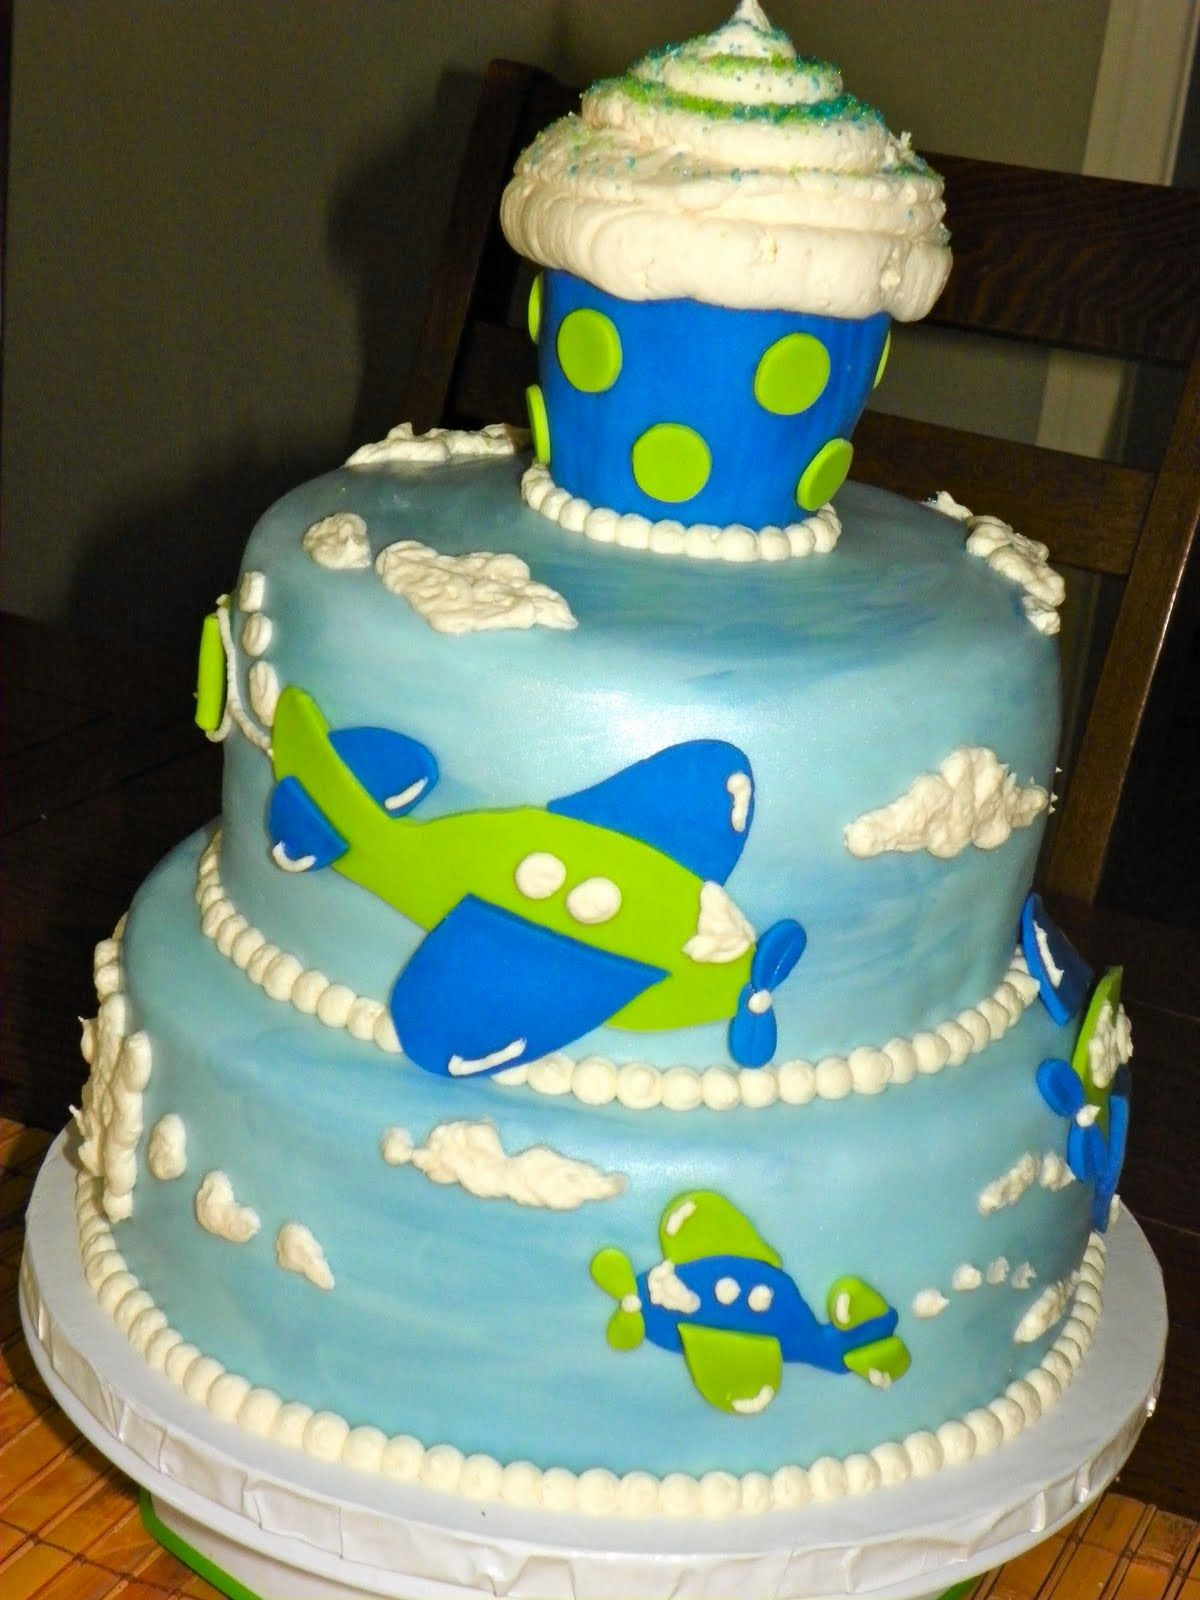 Birthday Cakes at Publix Plumeria Cake Studio Airplane Birthday